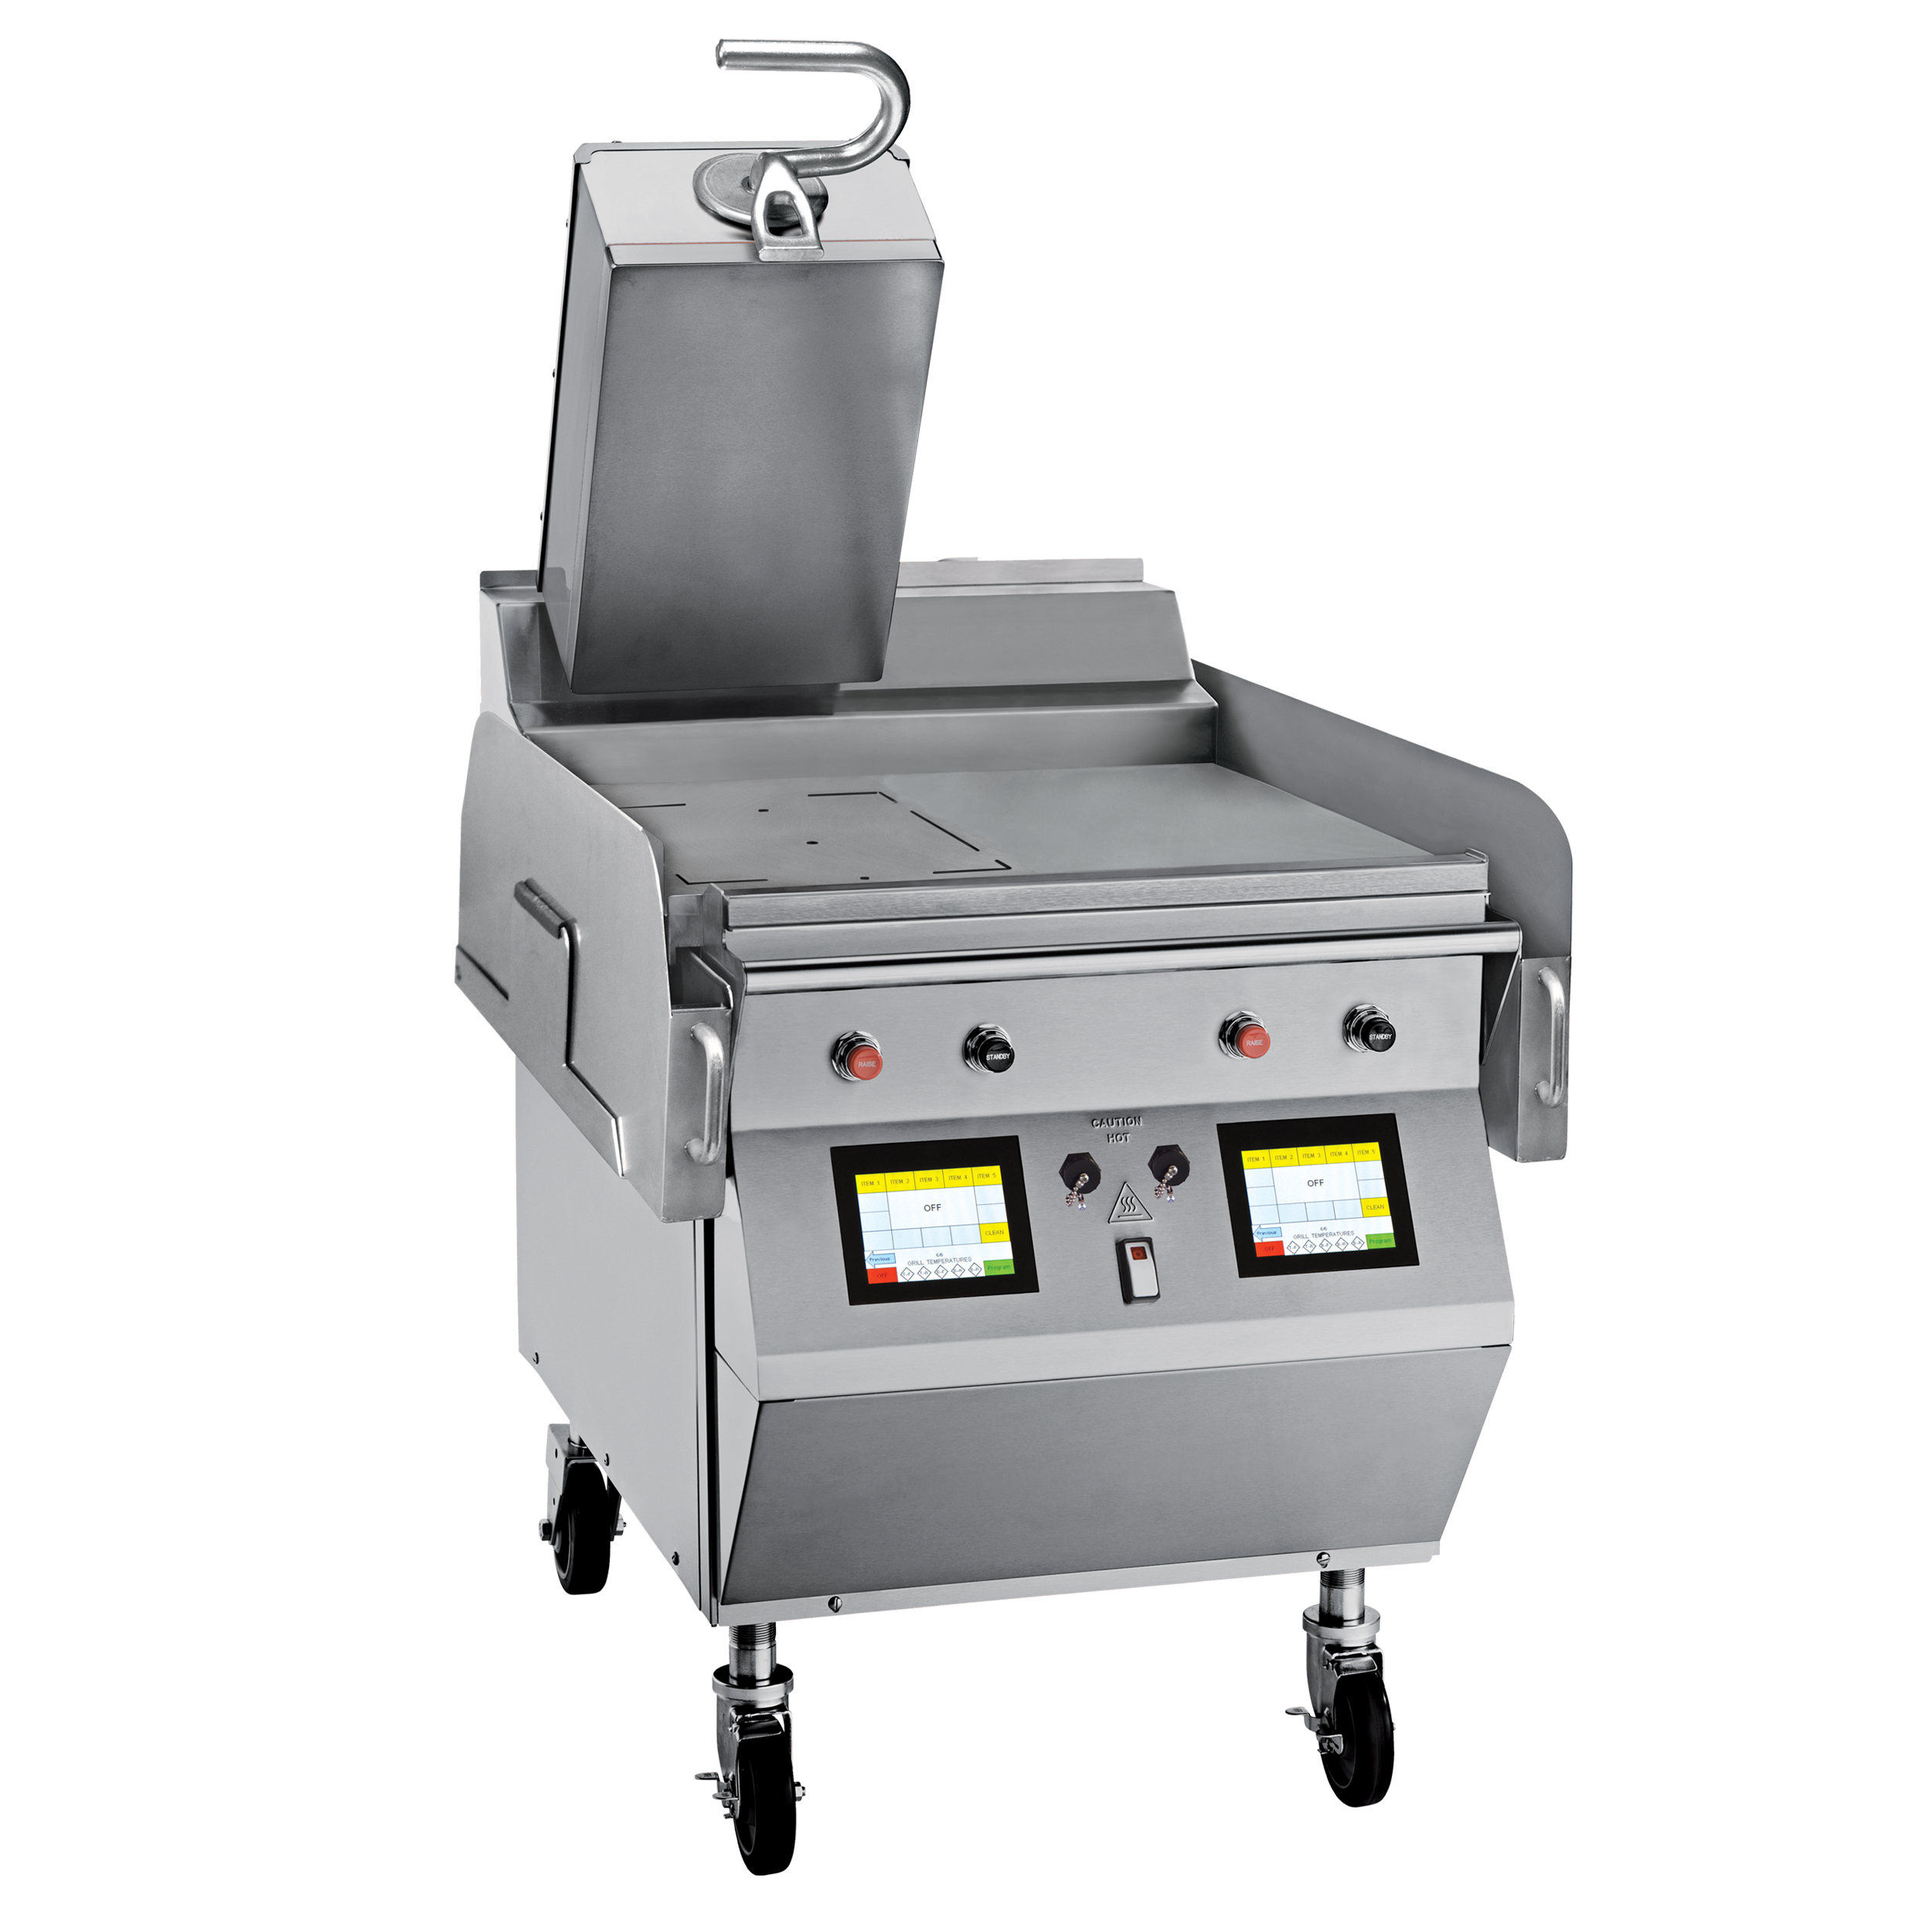 """Model L822   Electric 1 Platen 24"""" Grill  One touch menu selection automatically provides accurate TIME, TEMPERATURE and GAP settings for every product.  KEY SPECIFICATIONS:   Lower Cooking Surface Heat Source : Electric   Upper Platen Heat Source : Electric   Cooking Surface Dimensions : 24""""   Installation : Floor Model   Upper Platens : 1"""